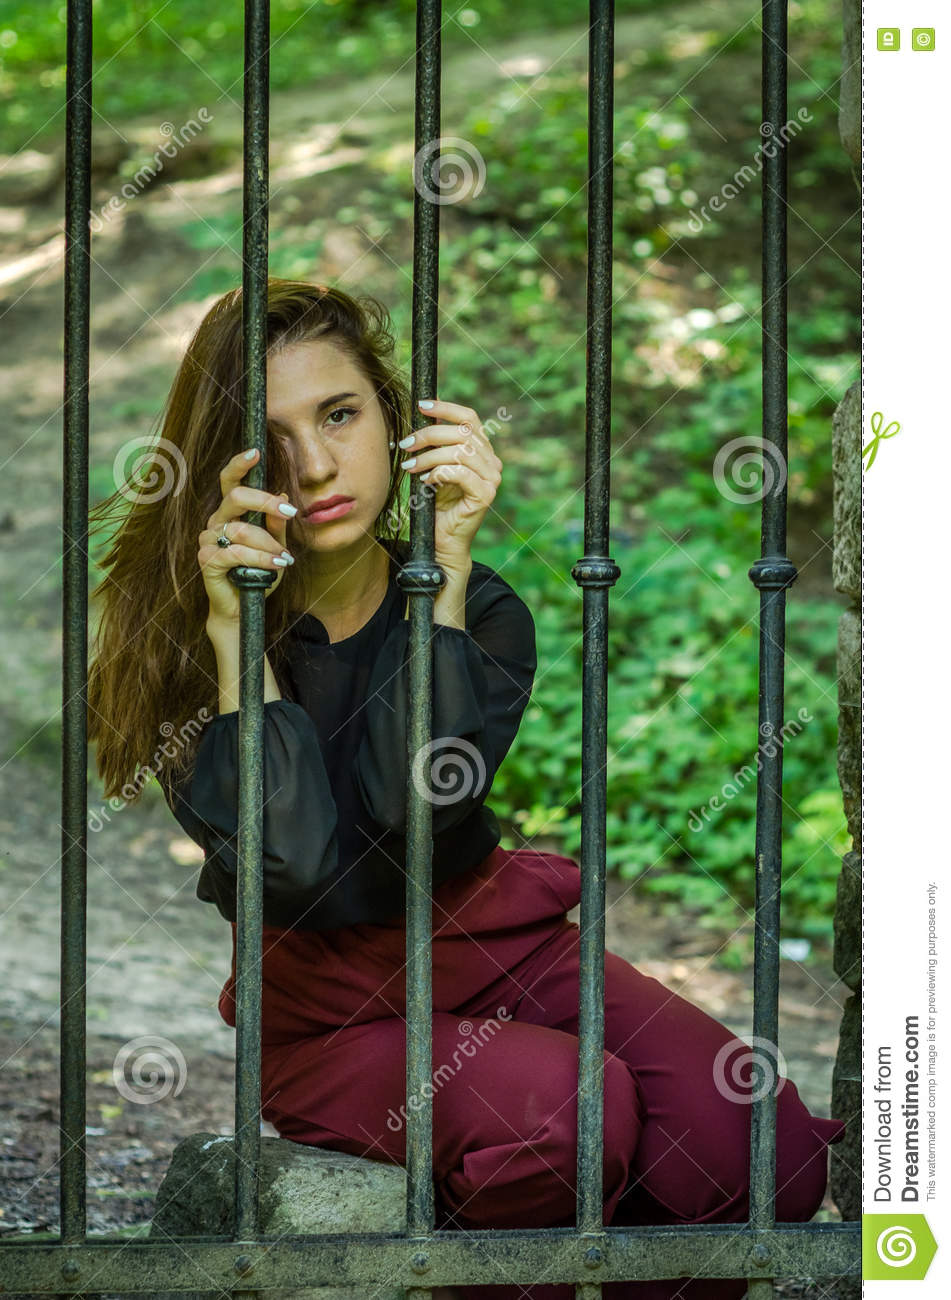 Young Charming Woman With Long Hair Offender, Sits Behind Bars In.